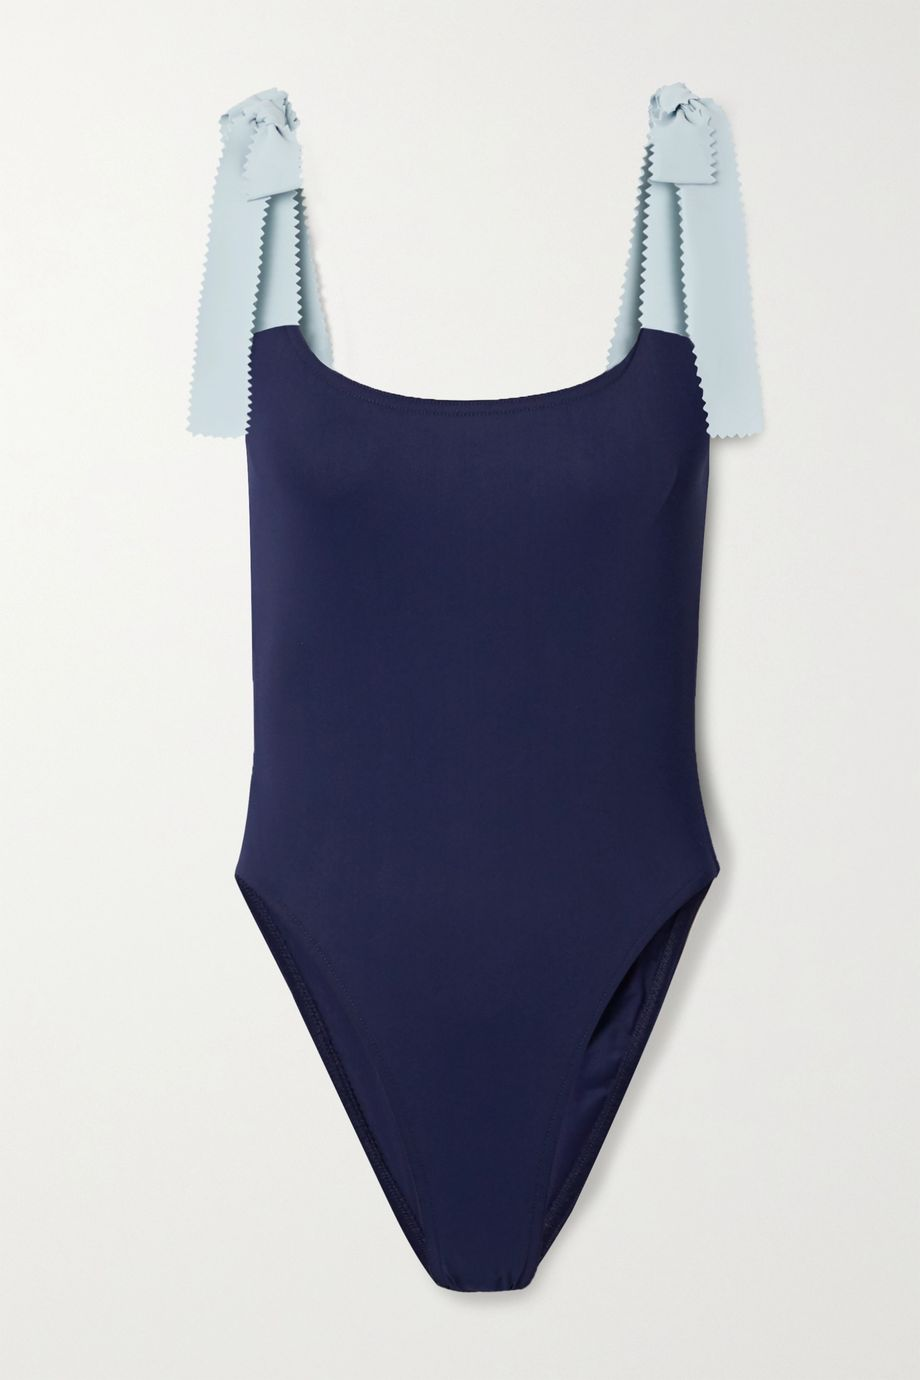 Karla Colletto Giselle two-tone swimsuit